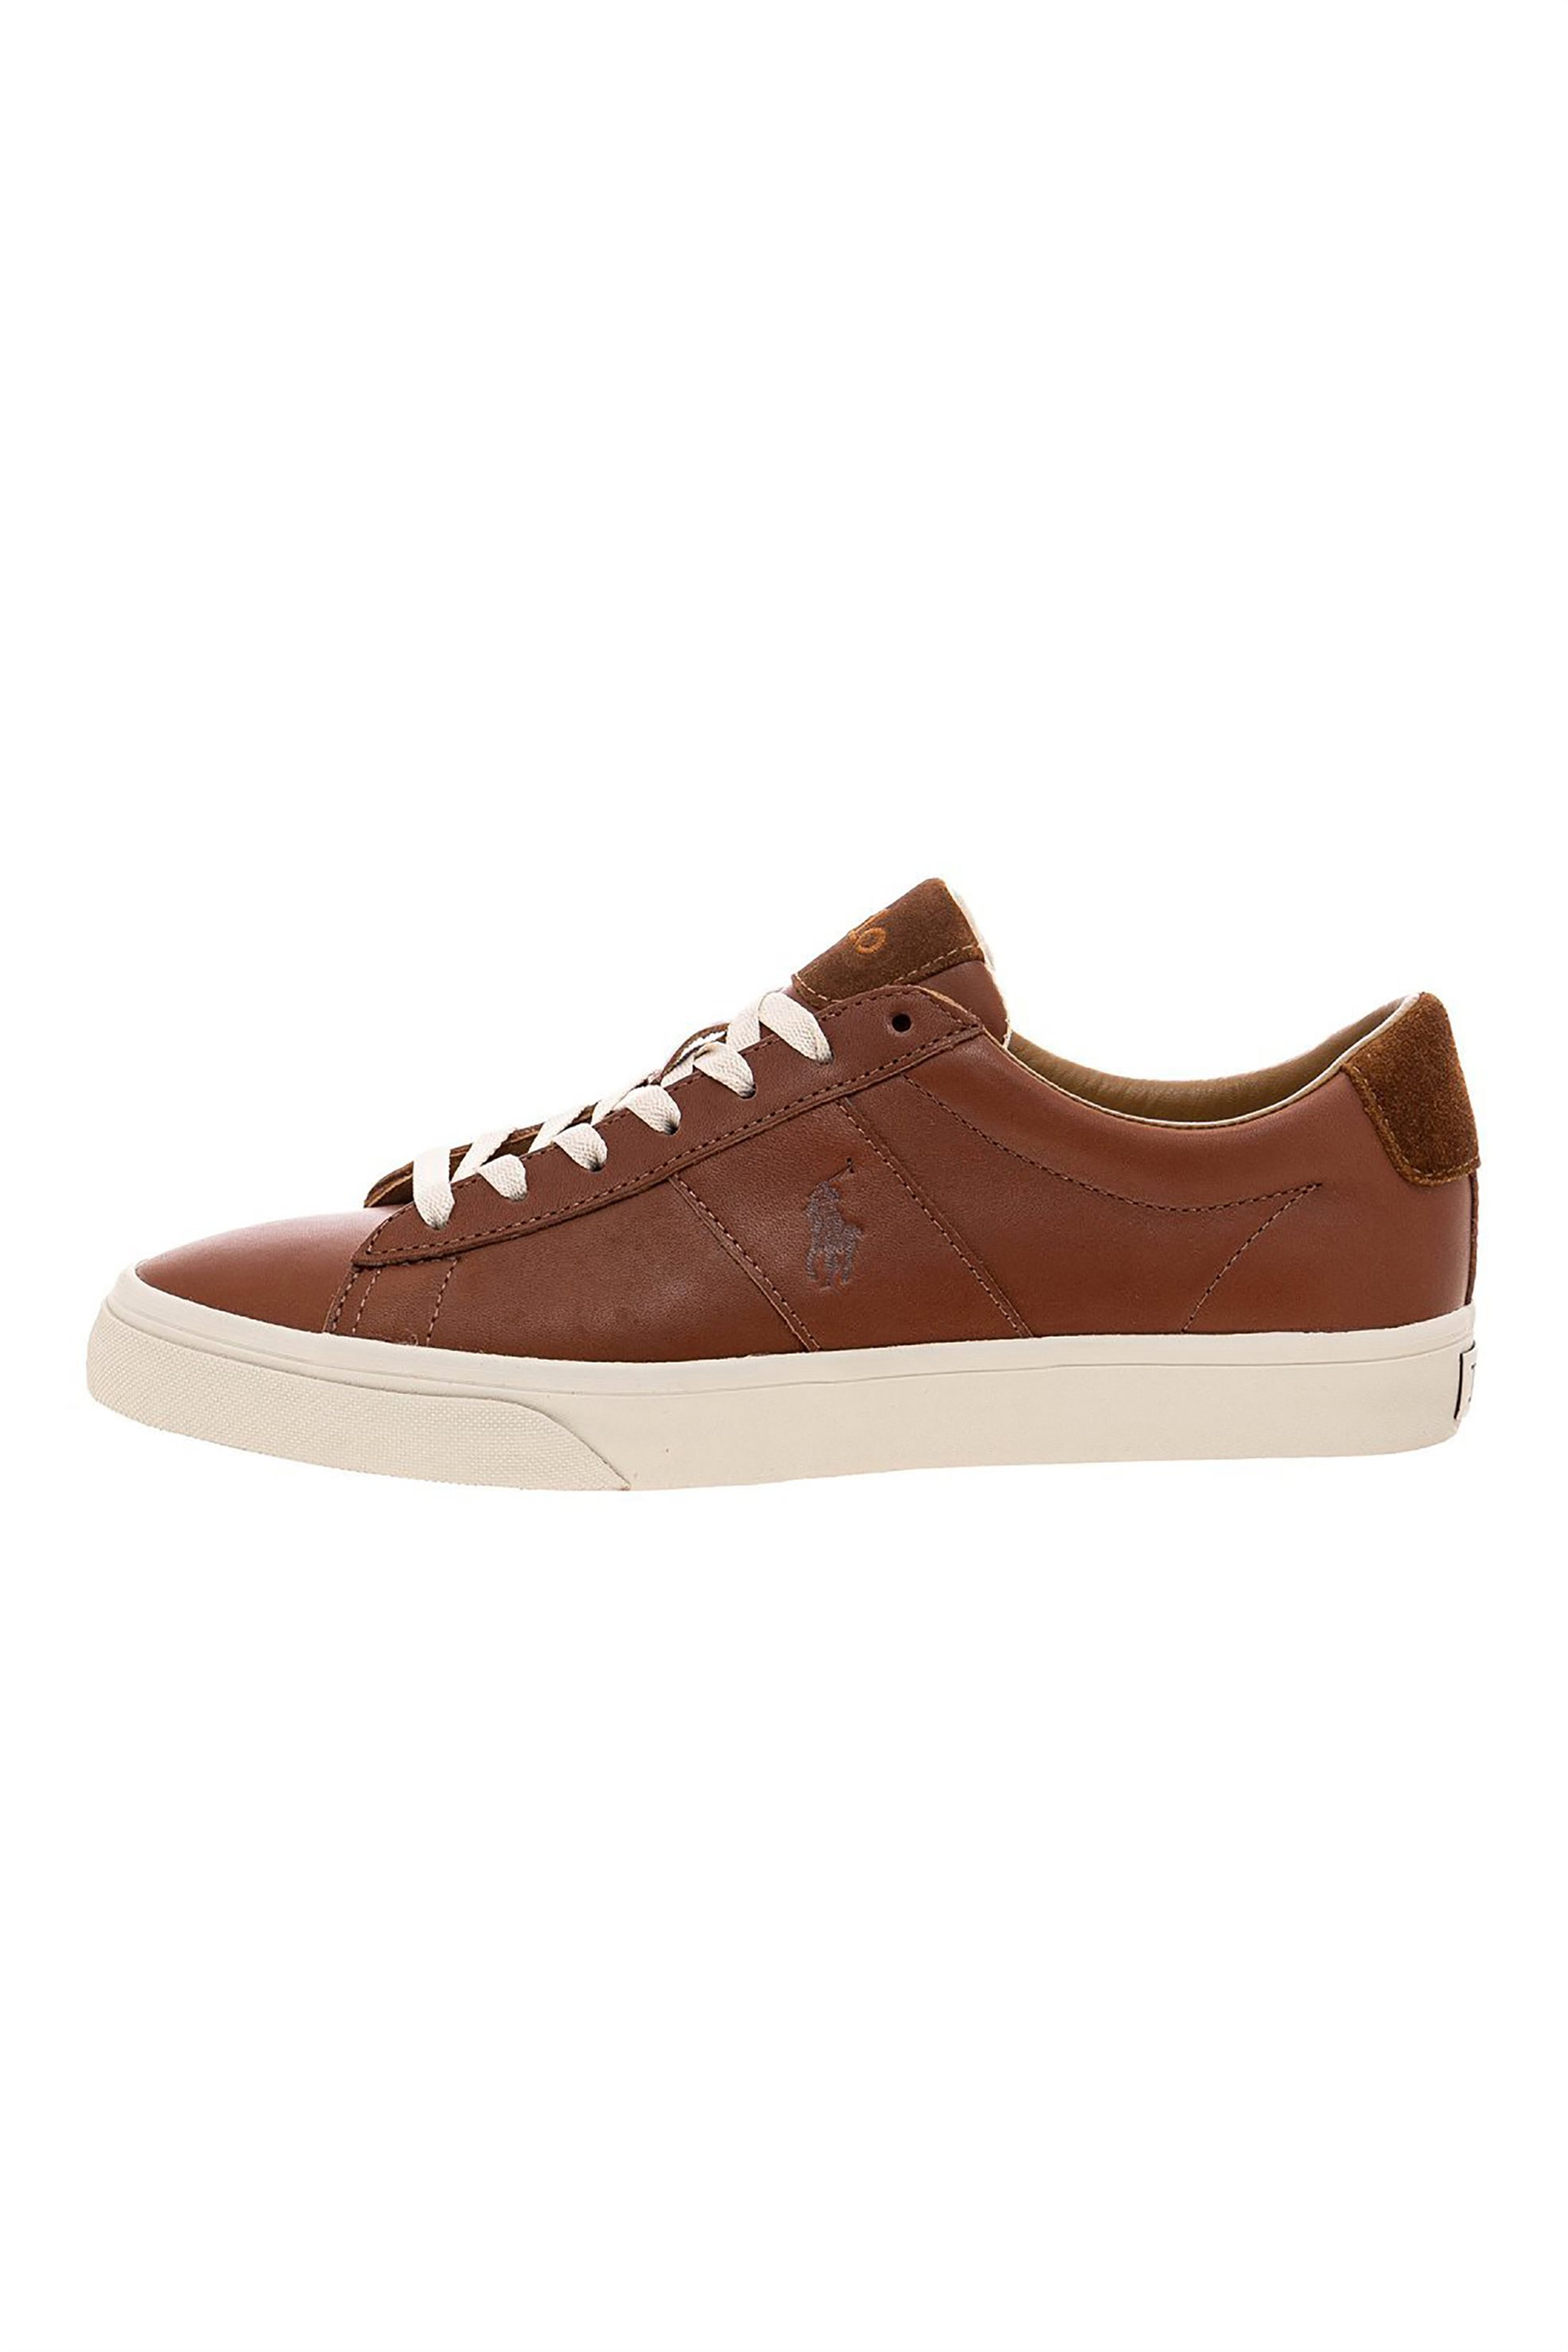 Polo Ralph Lauren ανδρικά δερμάτινα sneakers – 816786745003 – Καφέ